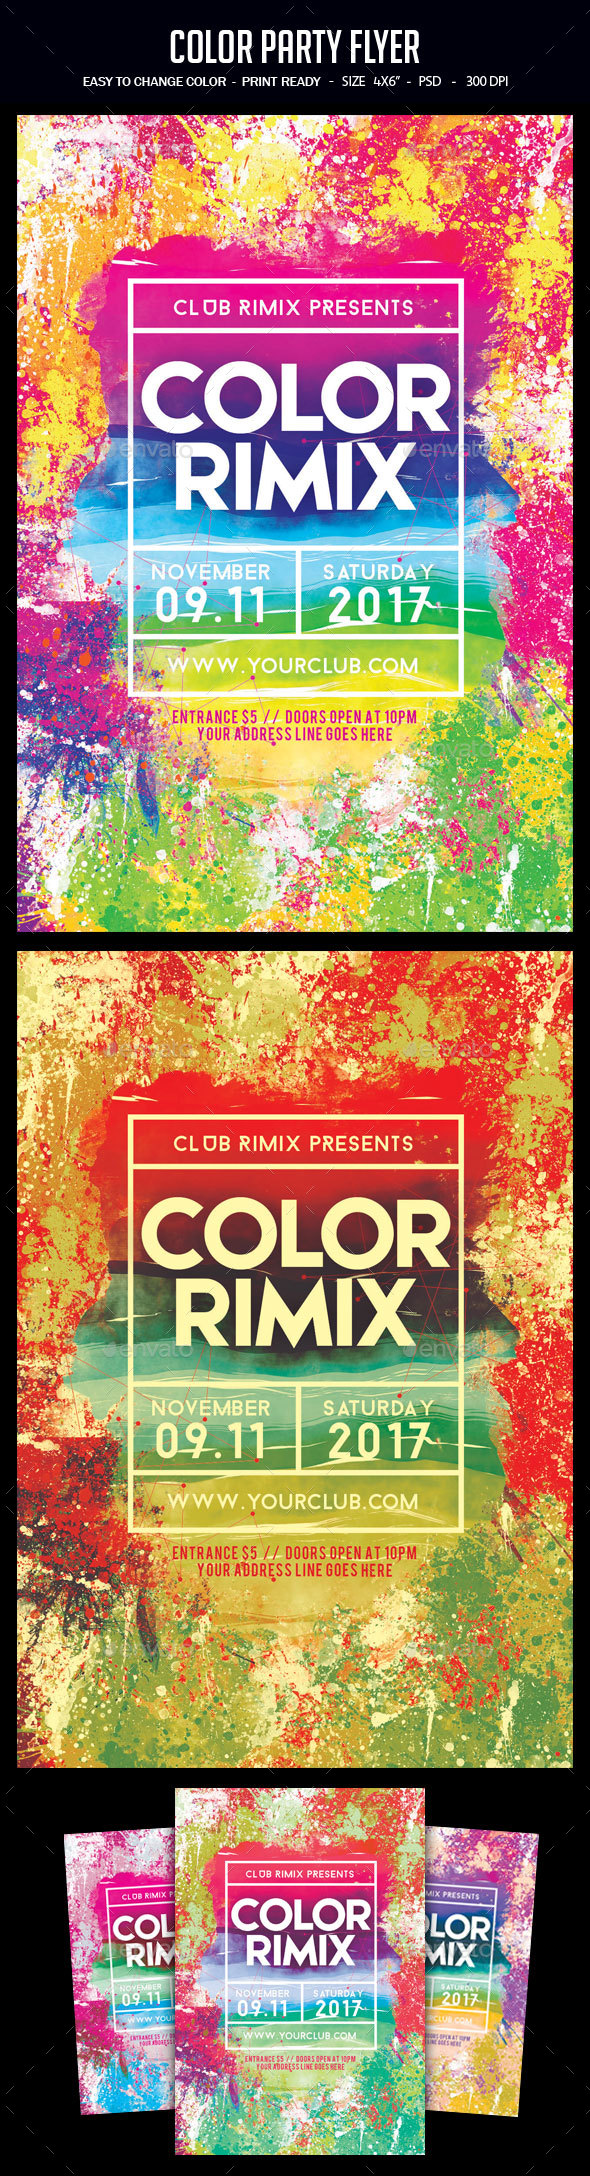 GraphicRiver Color Party Flyer 20545620